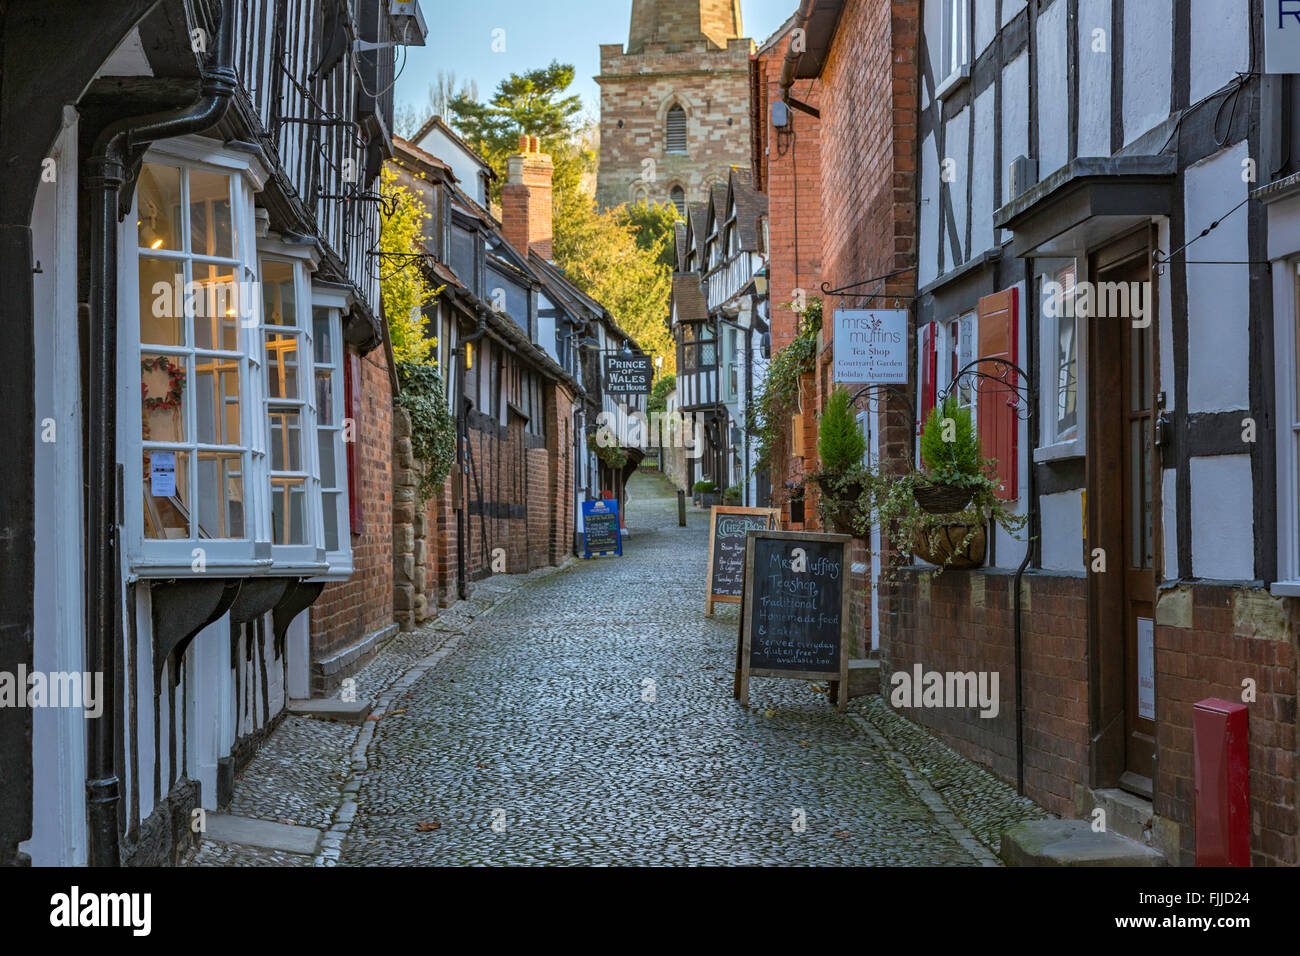 Church Lane in the historic rural town of Ledbury, Herefordshire, England, UK - Stock Image